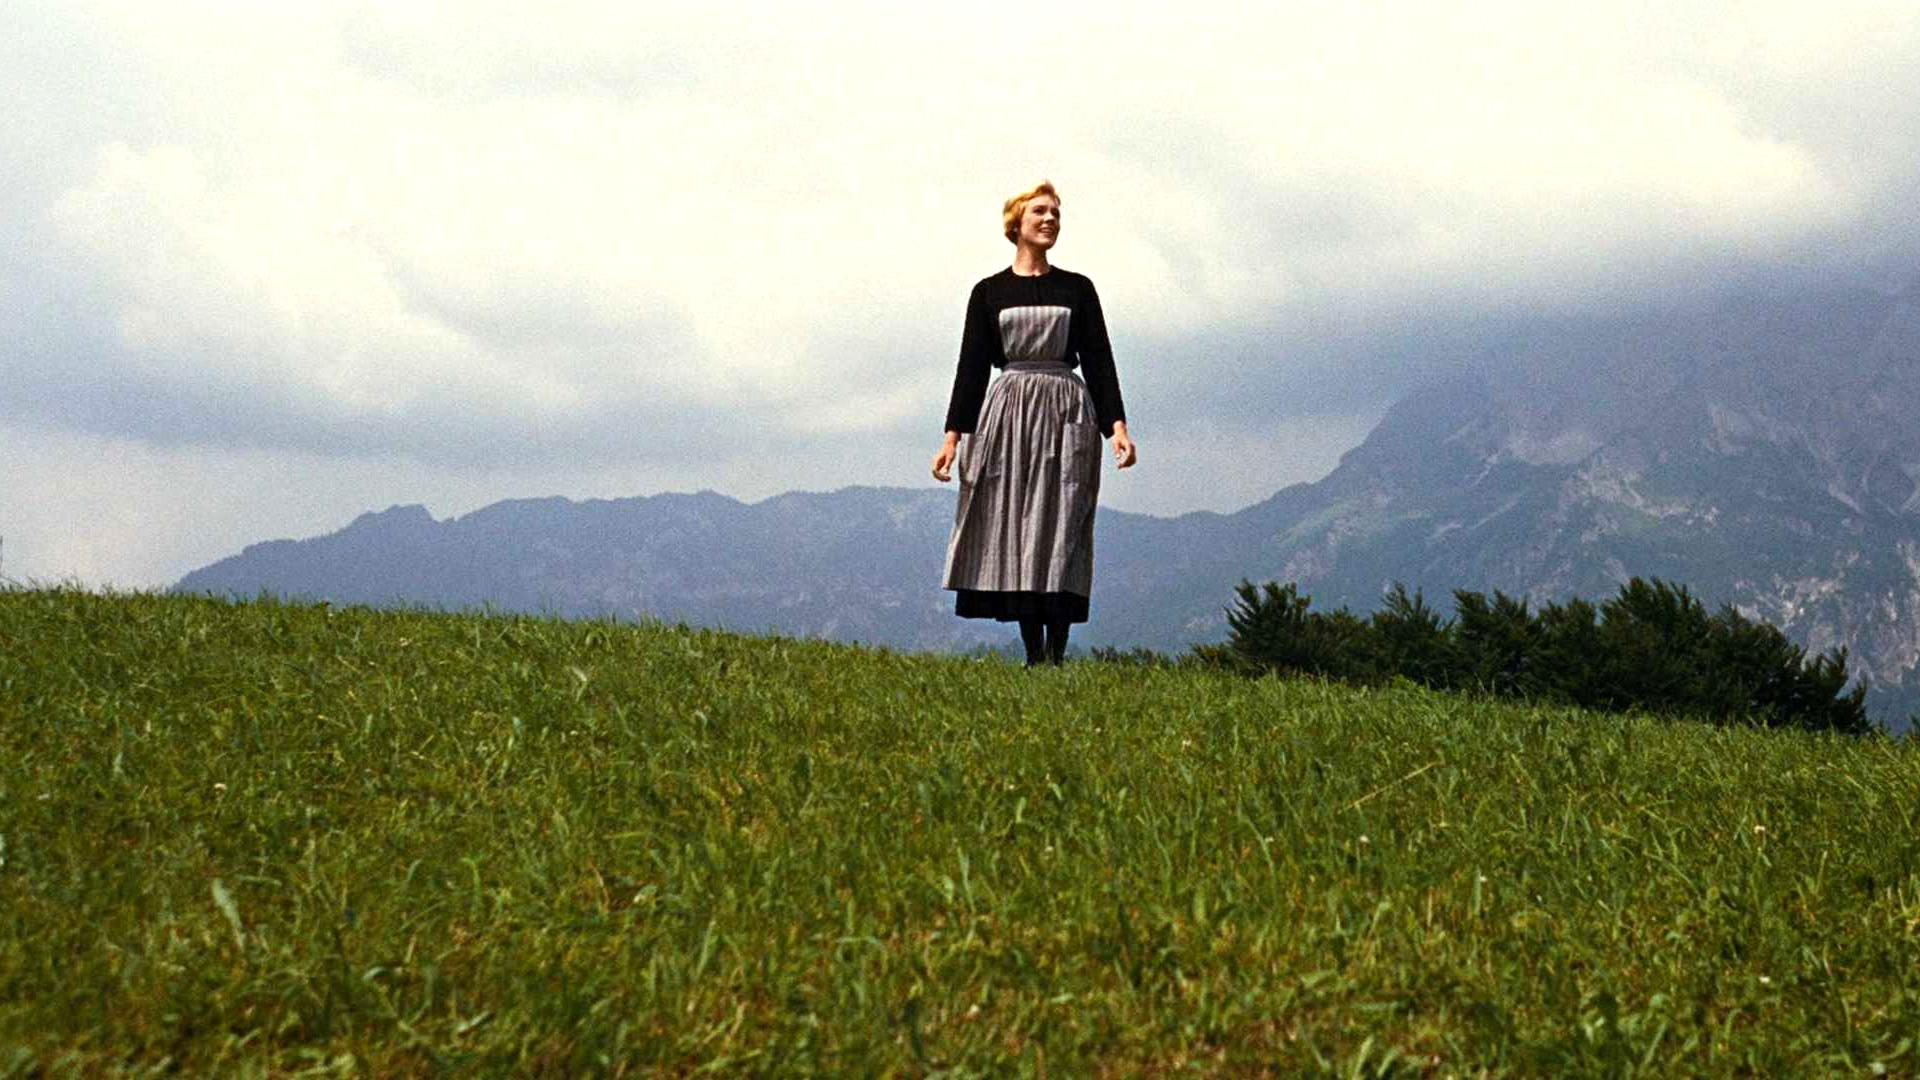 The Sound Of Music Wallpapers Wallpaper Cave